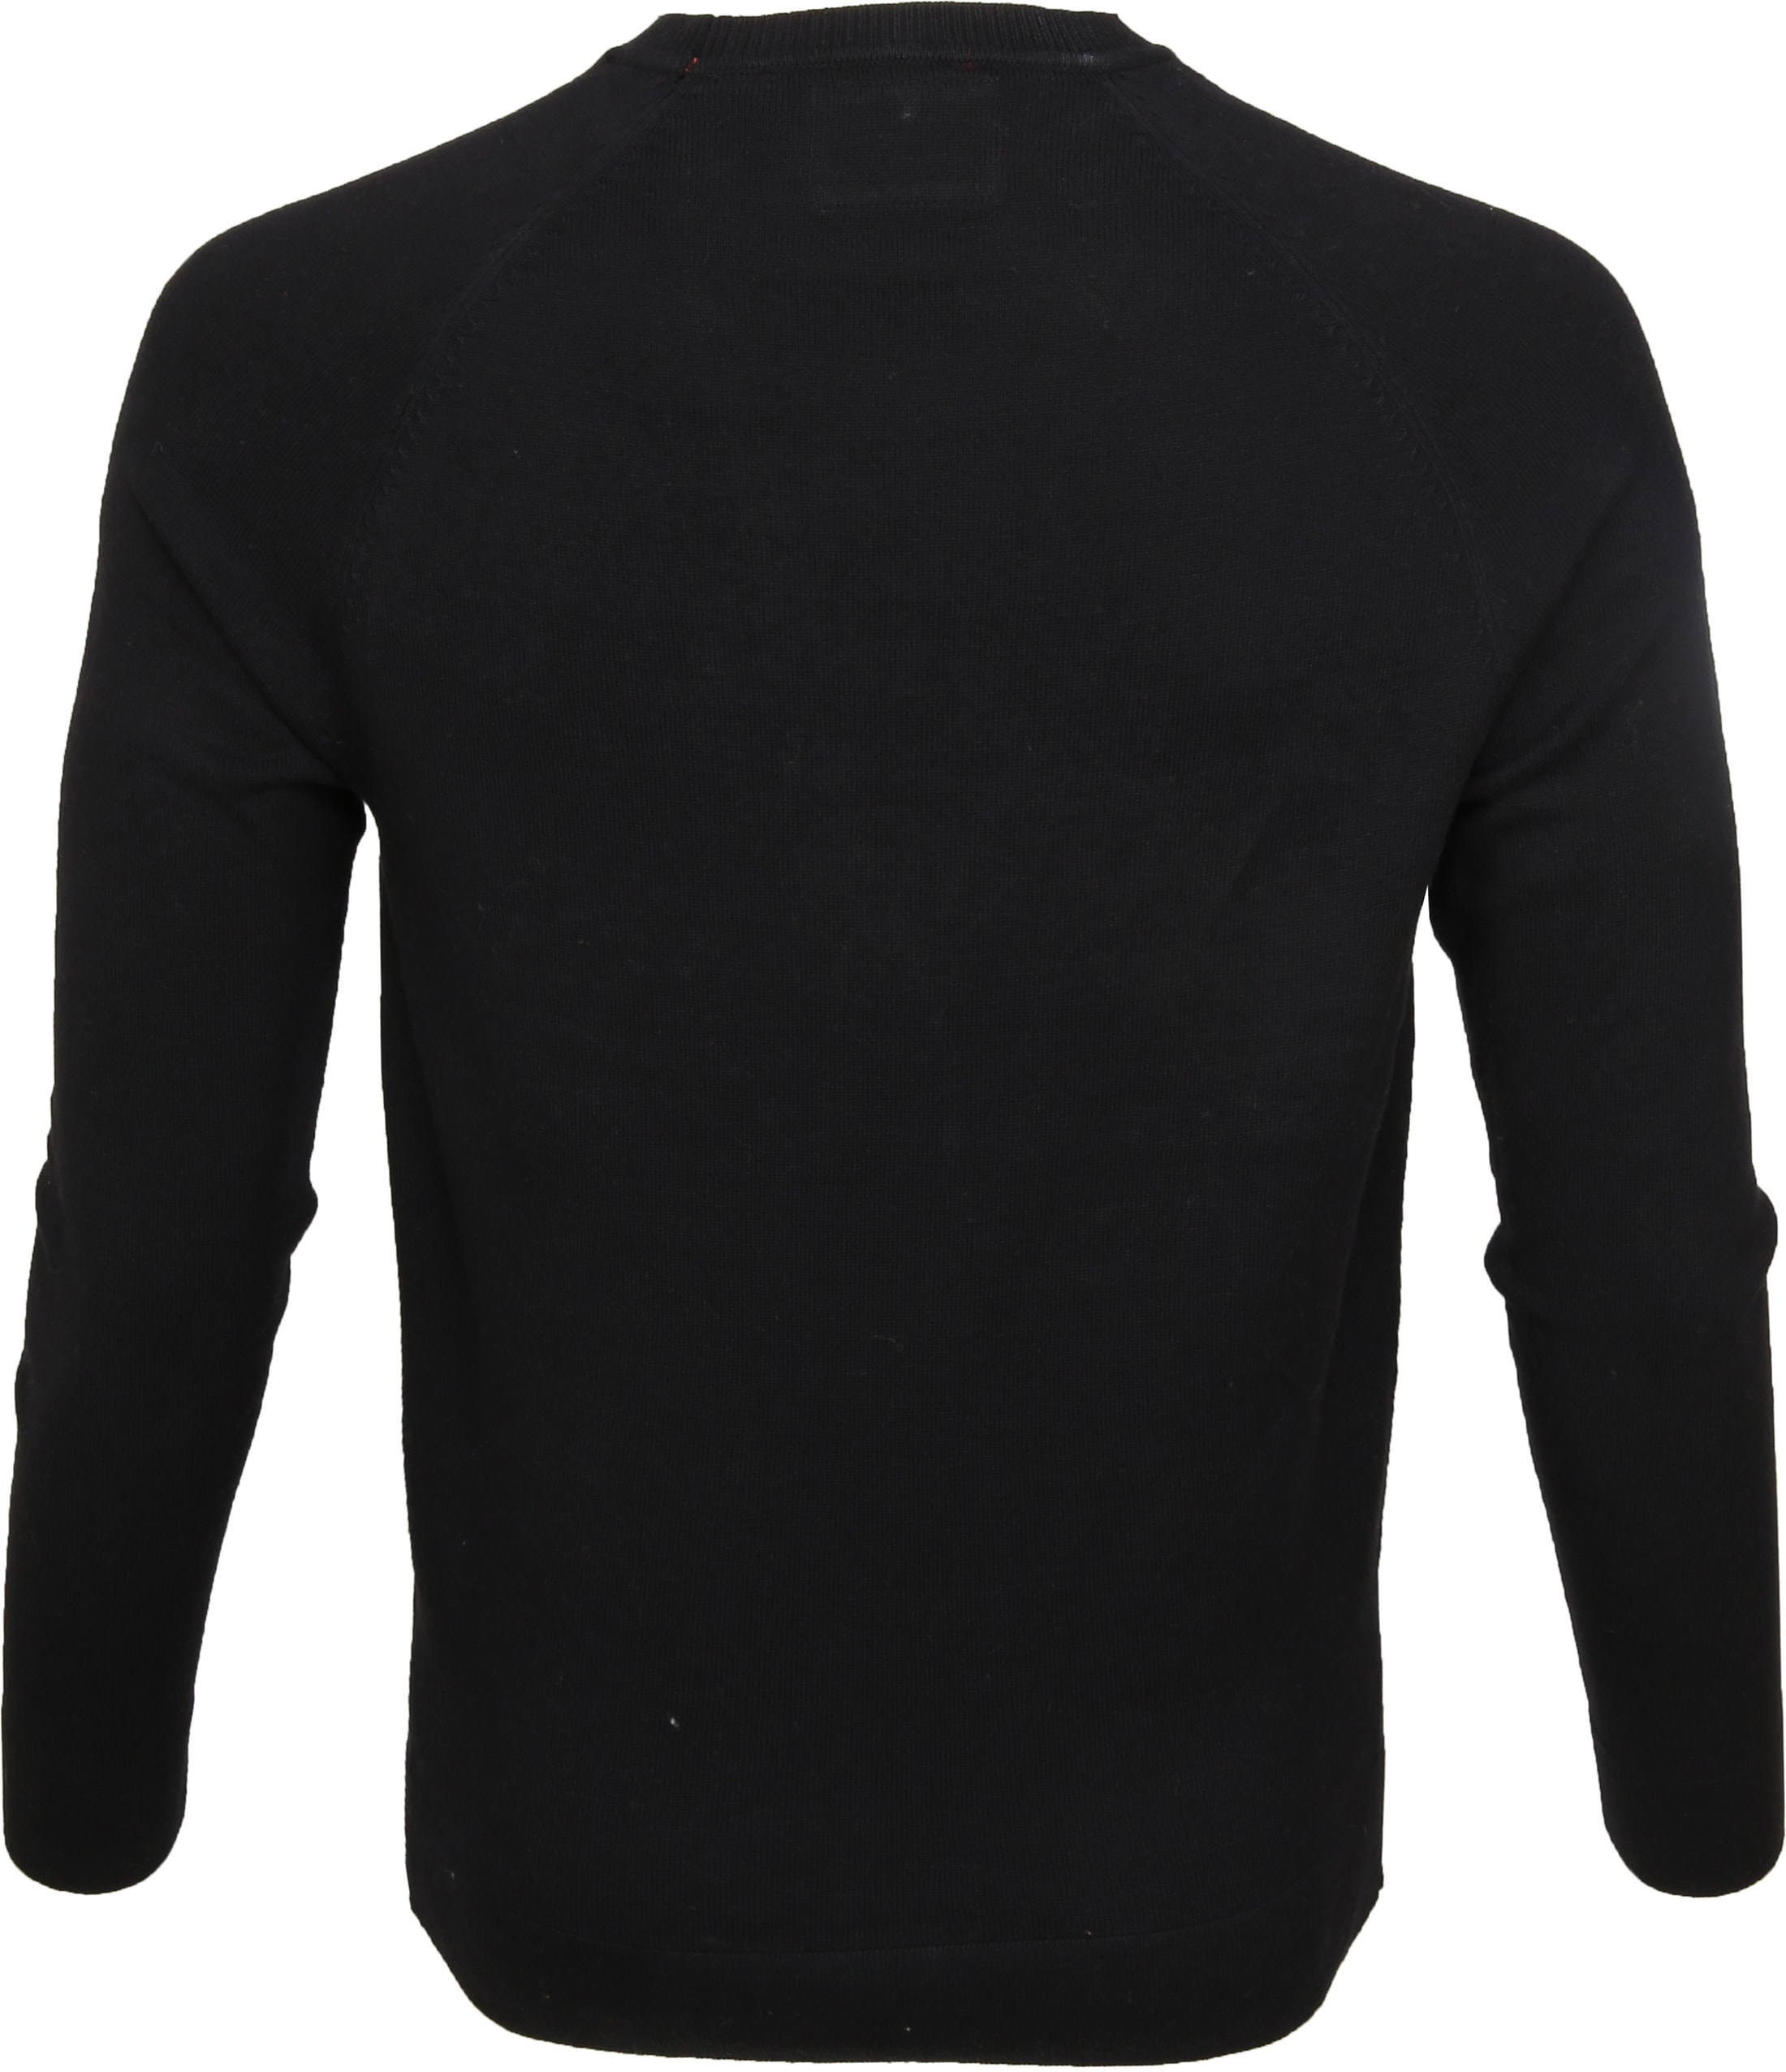 Superdry Pullover Cotton Crew Black foto 3